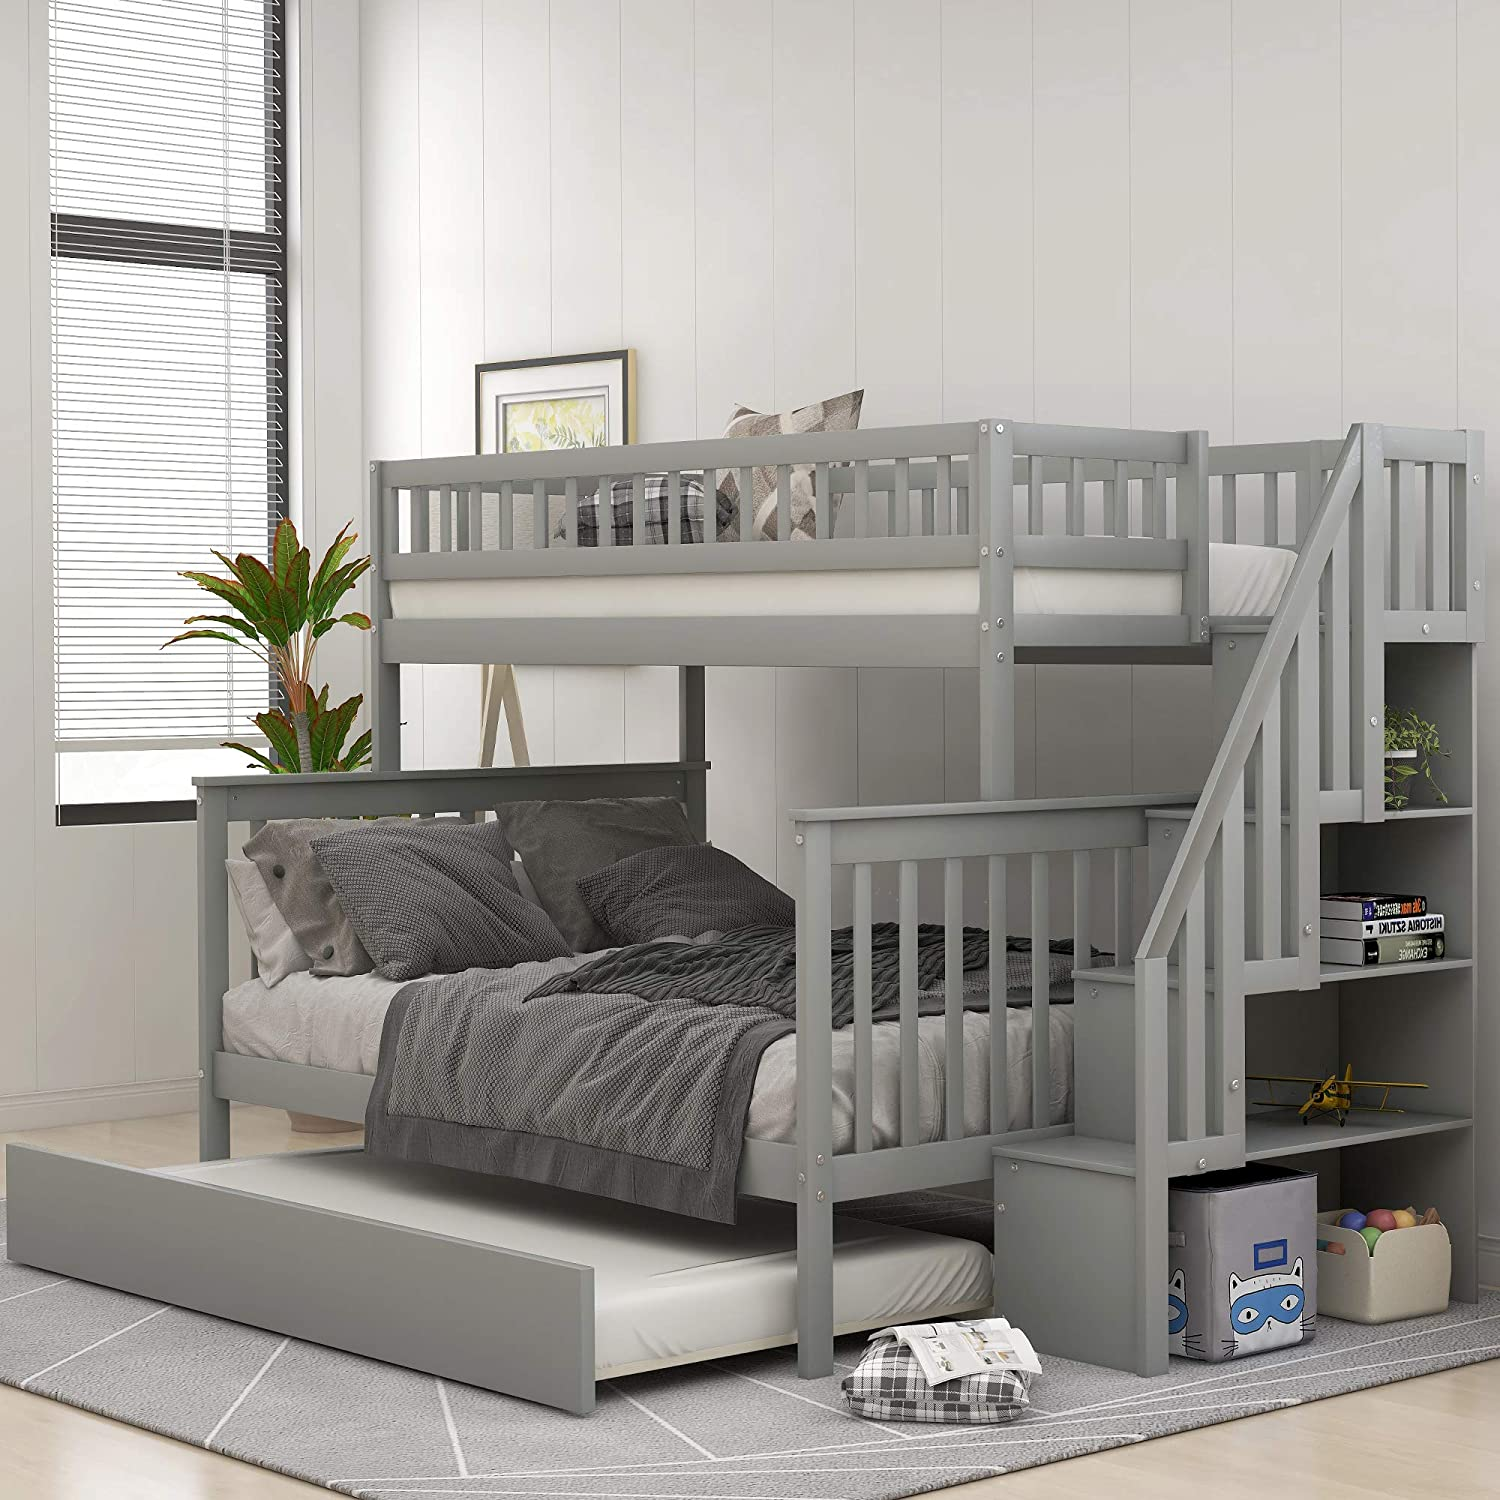 STARTOGOO Solid Wood Twin Over Full Trundle, Bunk Beds for Kids with Storage, Stairs and Guard Rail, No Spring Box Needed, Gray 2